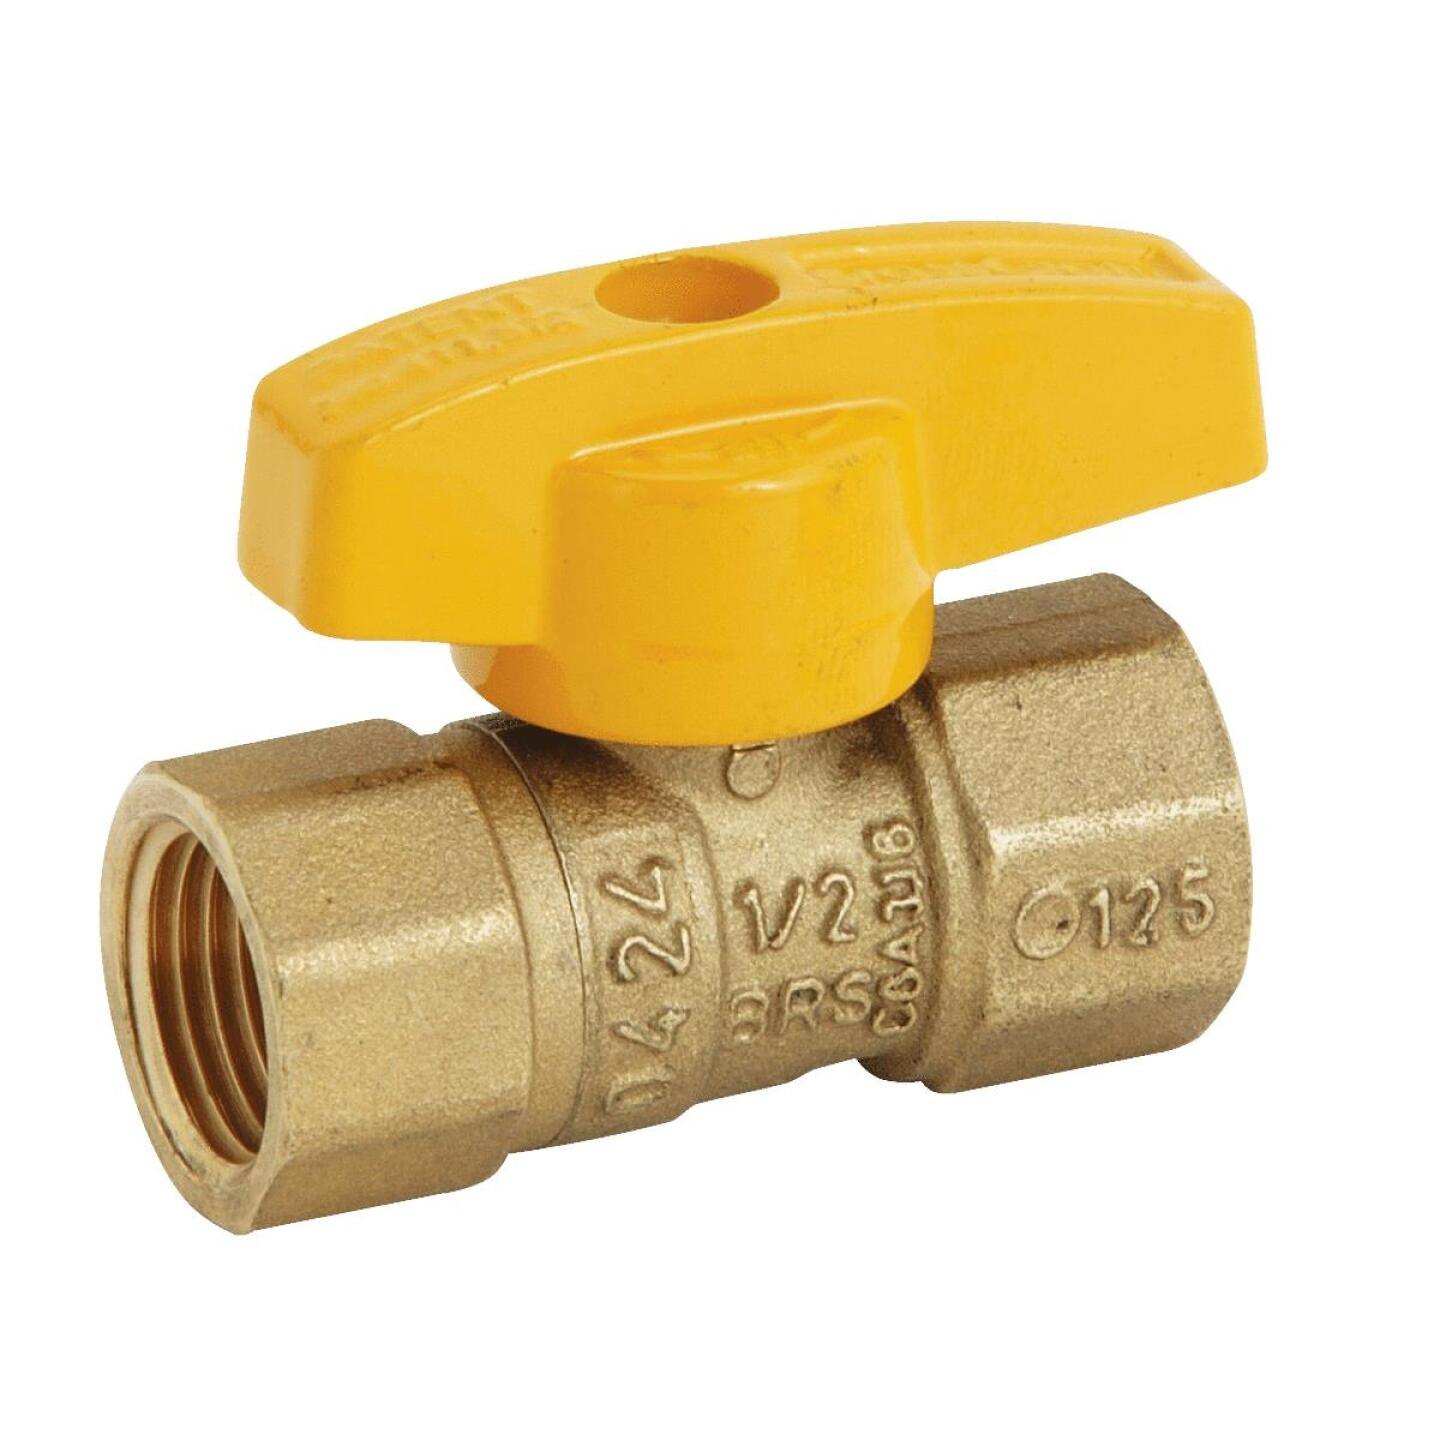 BrassCraft 1/2 In. Brass Rating Gas Ball Valve, Femaile Pipe Thhreads Image 1